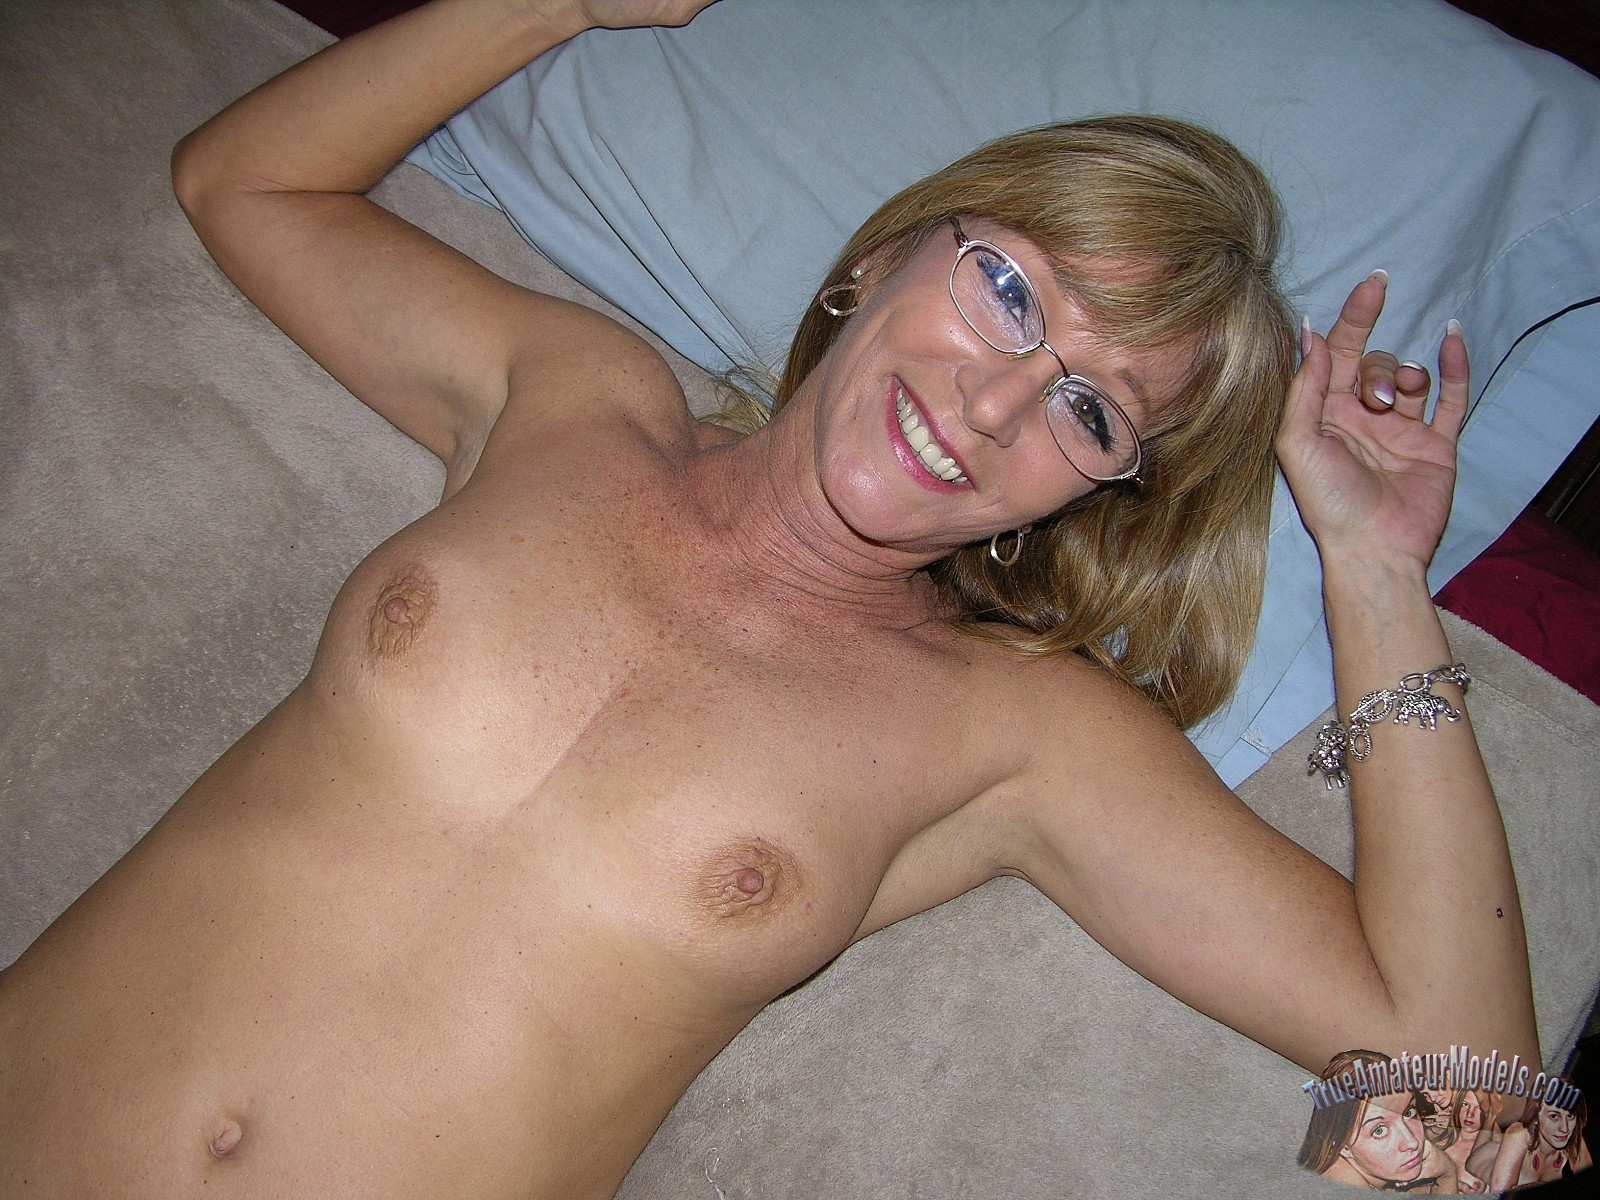 Sexy nude milf photos